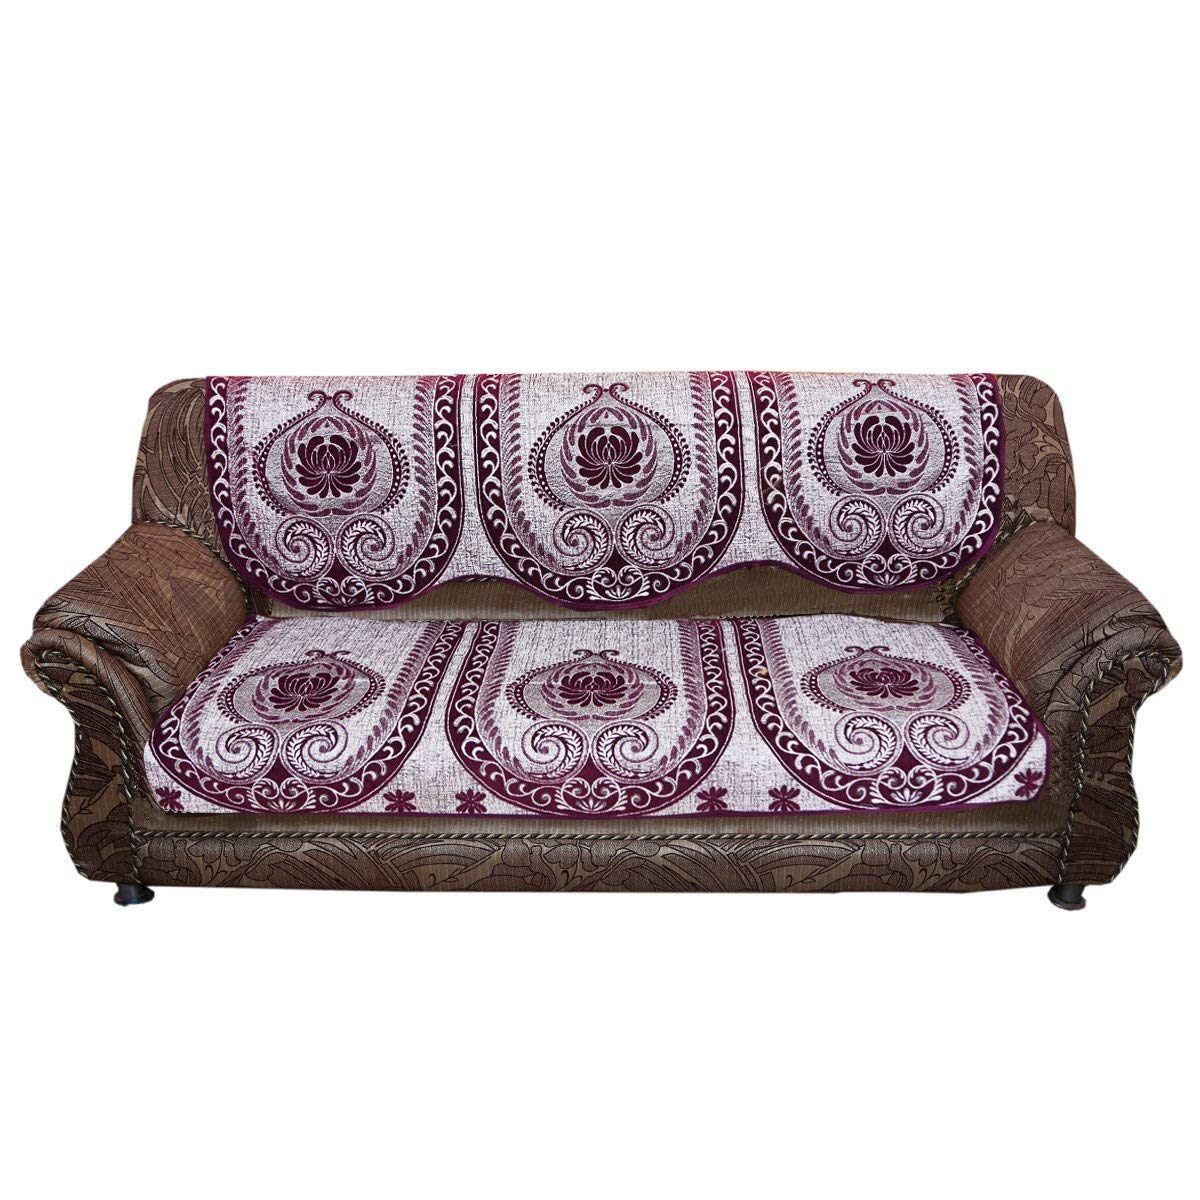 Get Quotations Kuber Industries Sofa Cover Heavy Velvet Cloth 5 Seater Set 10 Pieces Wine